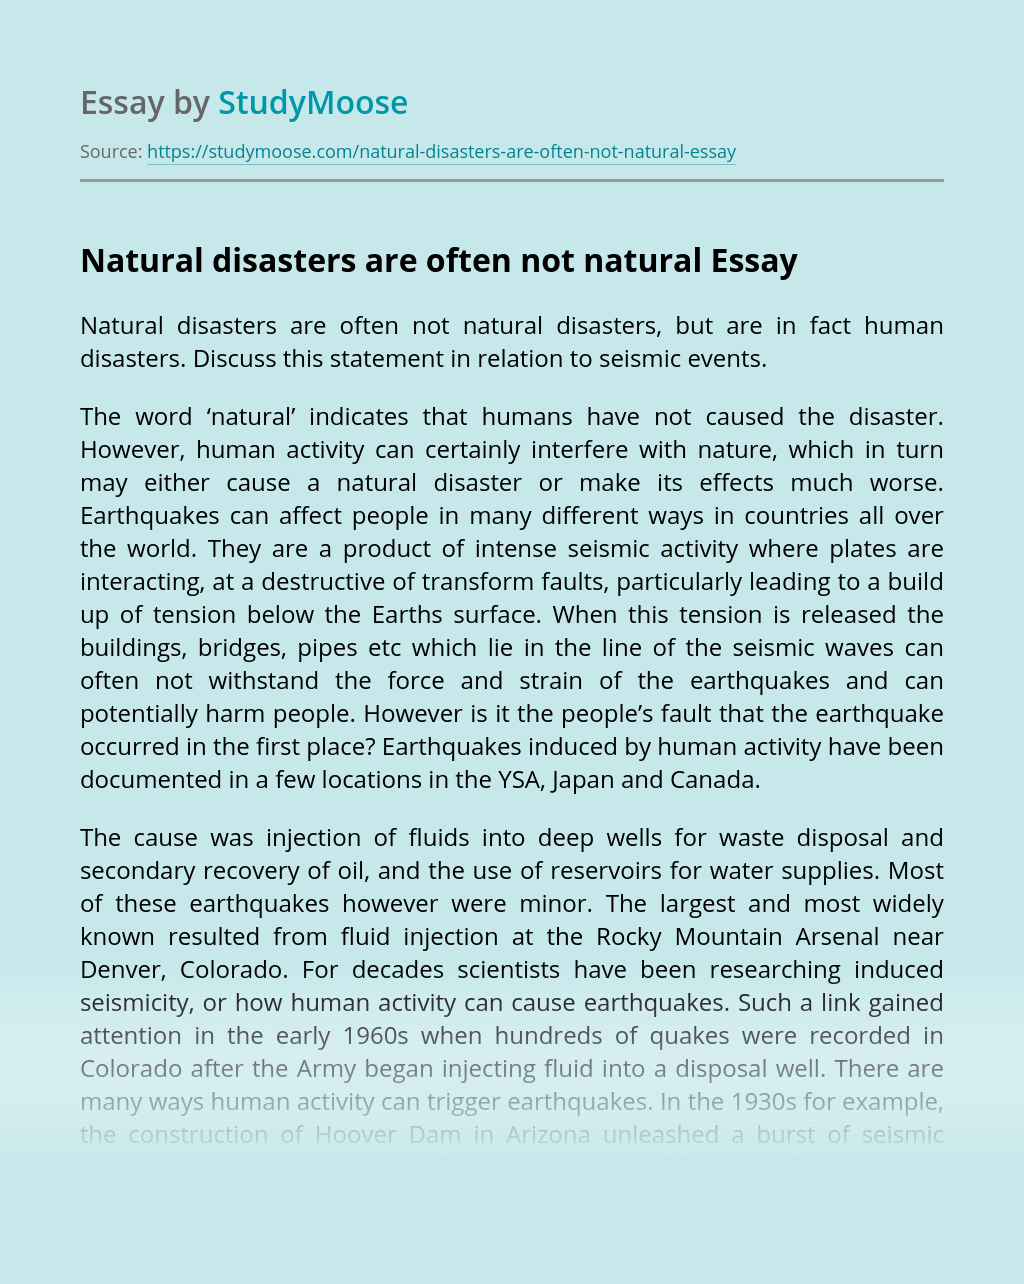 Natural disasters are often not natural